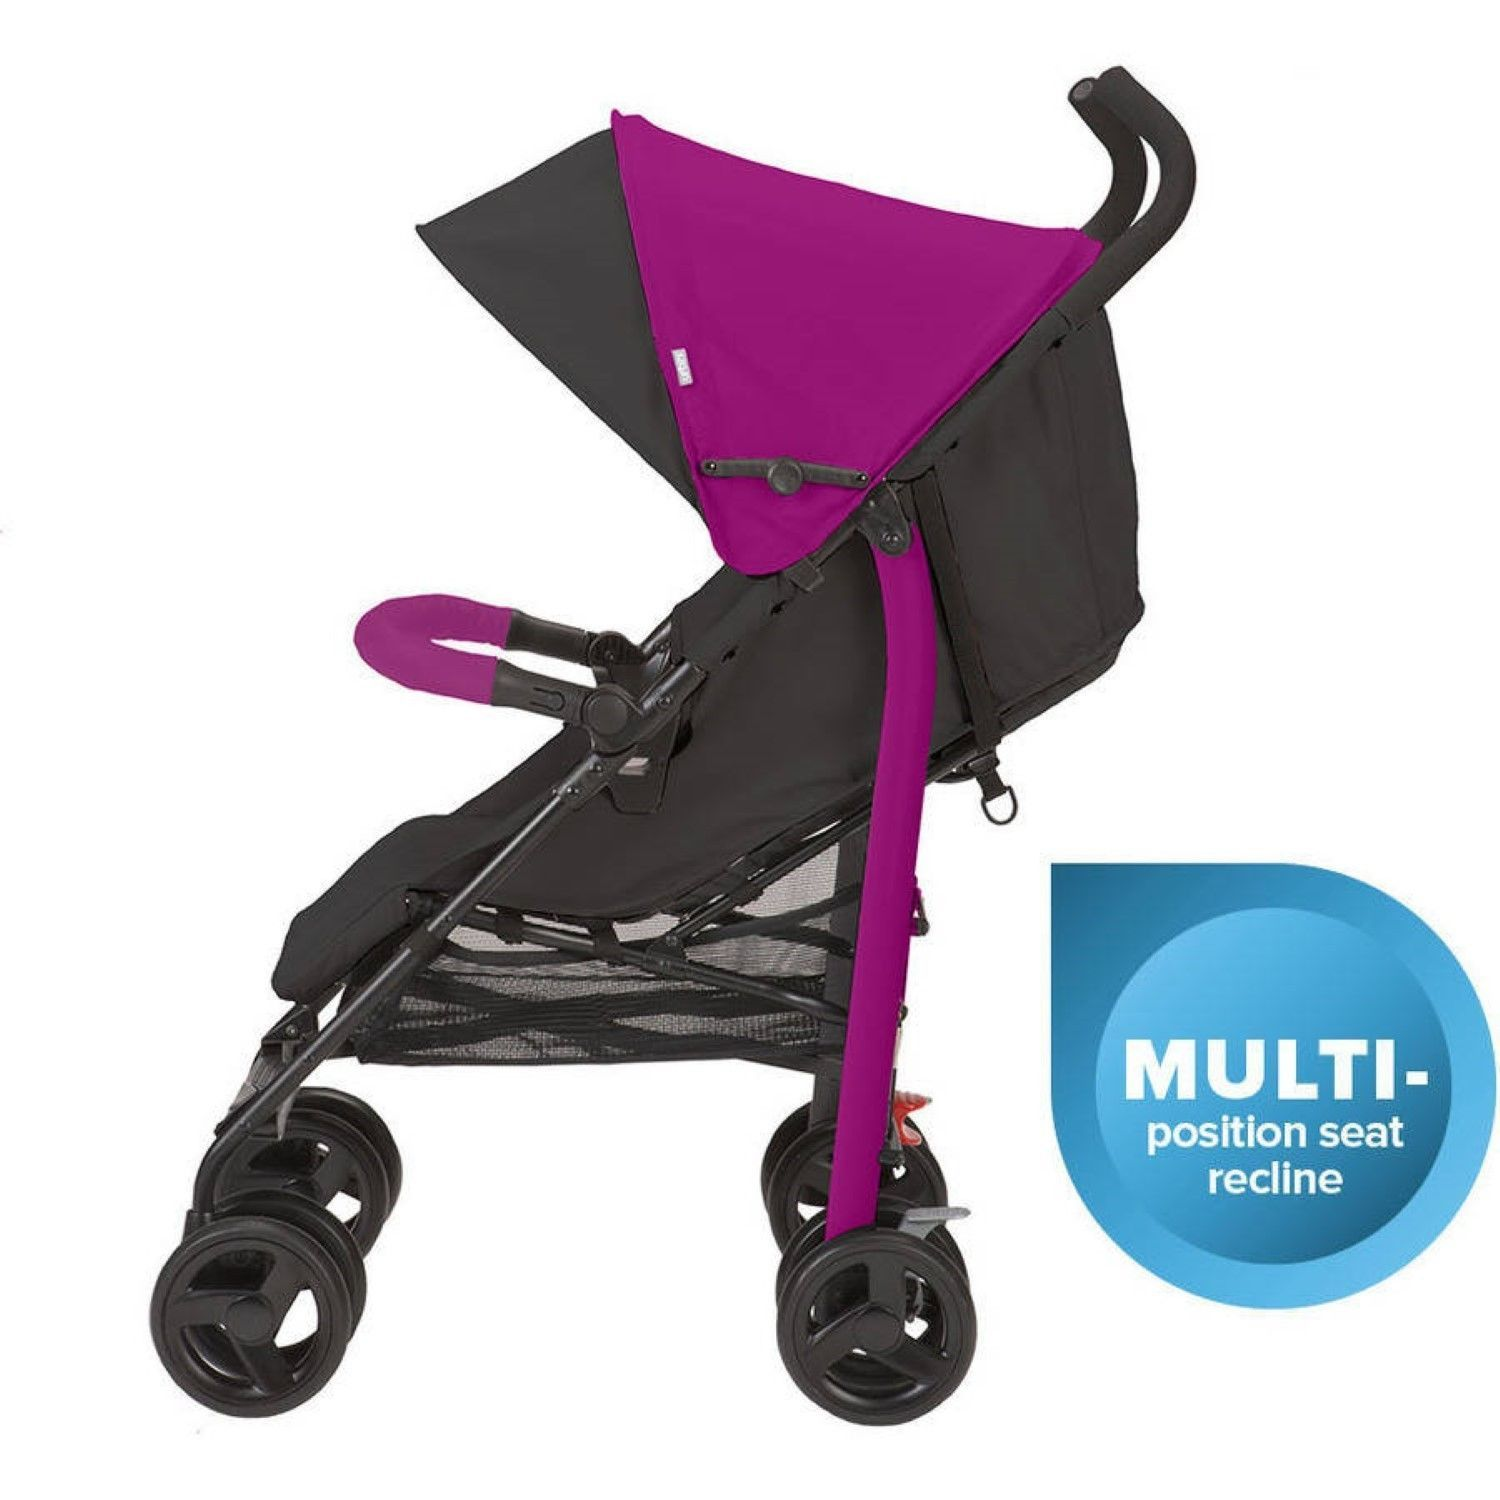 It Accepts The Urbini Sonti Infant Car Seat With Included Adapters And Older Babies Can Nap In Multi Position Reclining